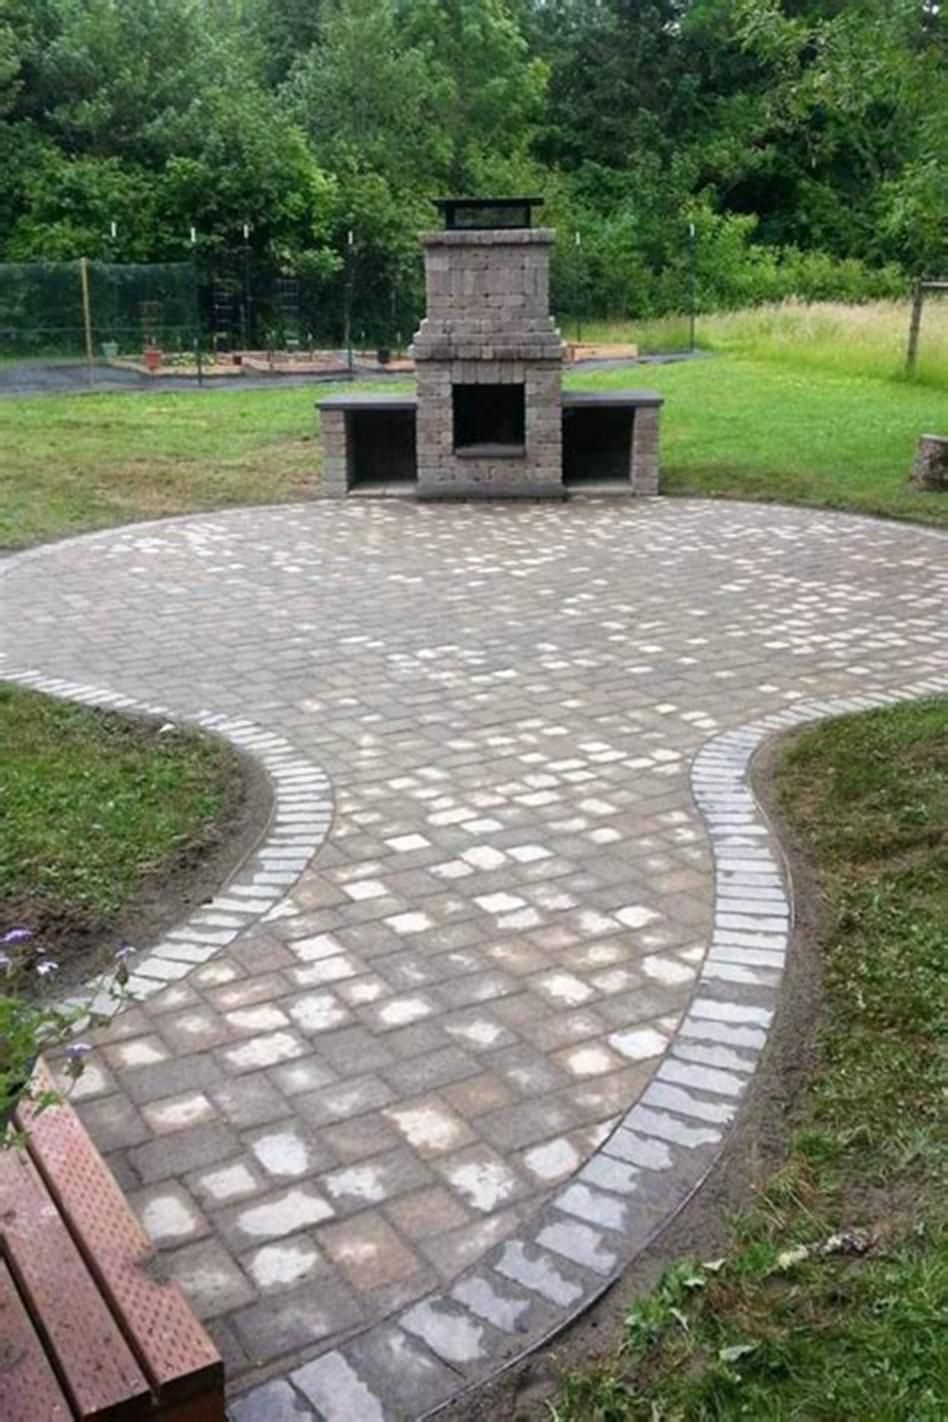 Amazing 45 Most Popular Backyard Paver Patio Design Ideas 2019 16 is part of Pavers backyard, Patio pavers design, Paver patio, Fire pit backyard, Concrete patio designs, Outside fire pits - Amazing 45 Most Popular Backyard Paver Patio Design Ideas 2019 16